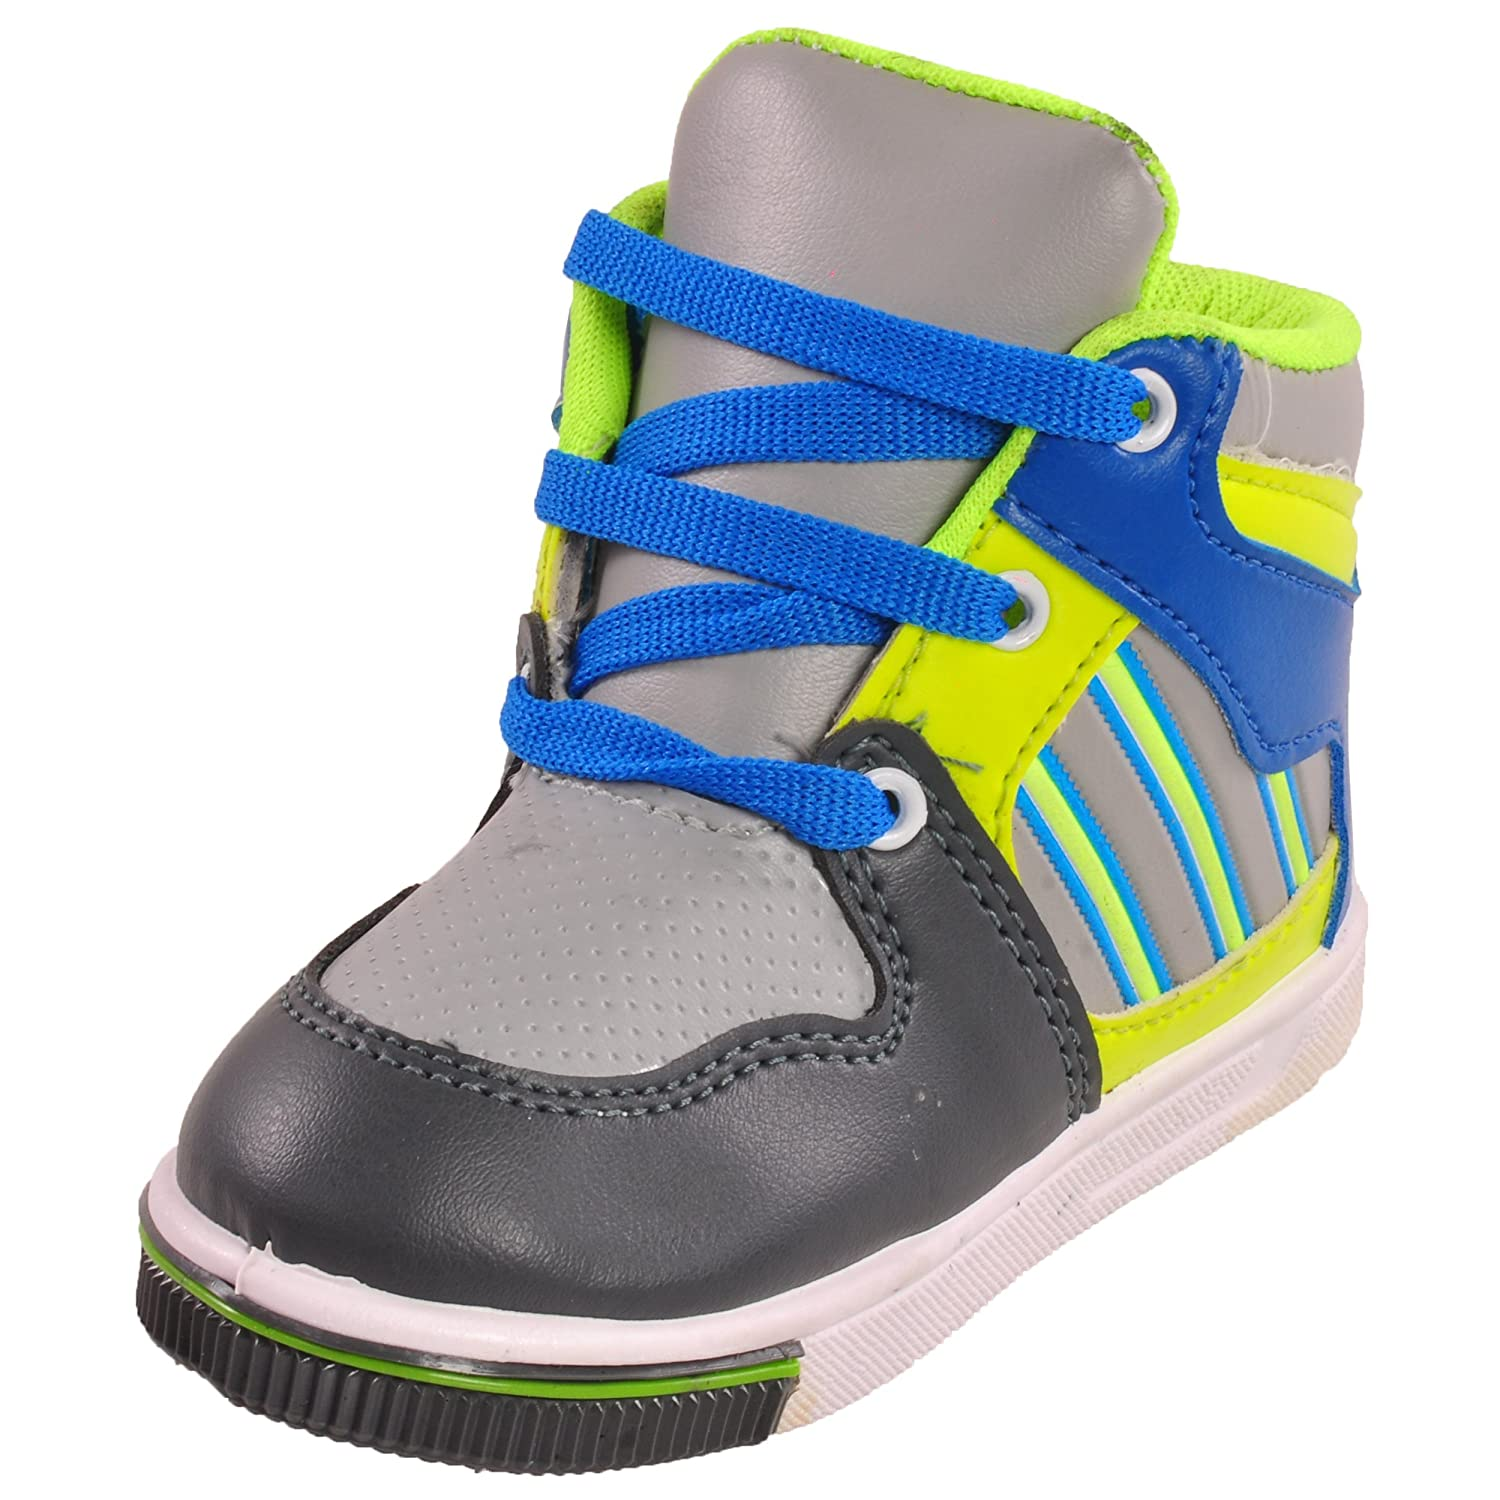 Tulaasi Neon Multicolor Kids Running Shoes